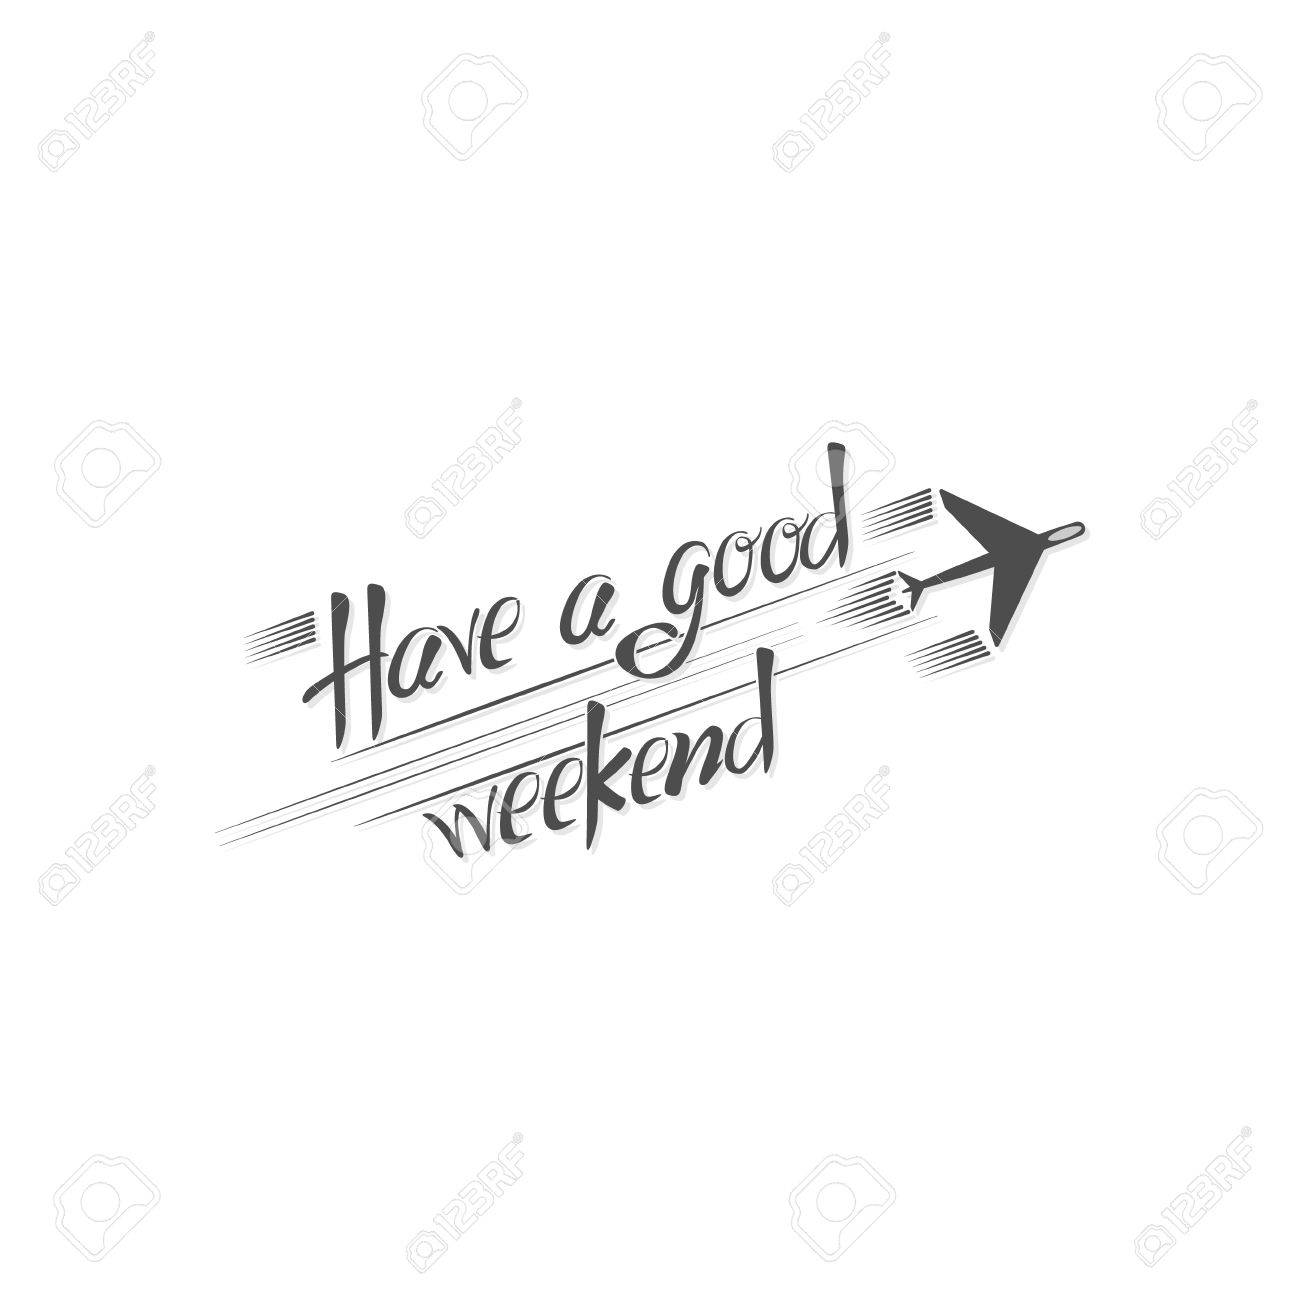 Have A Good Weekend Lettering Brushpen Isolated On White